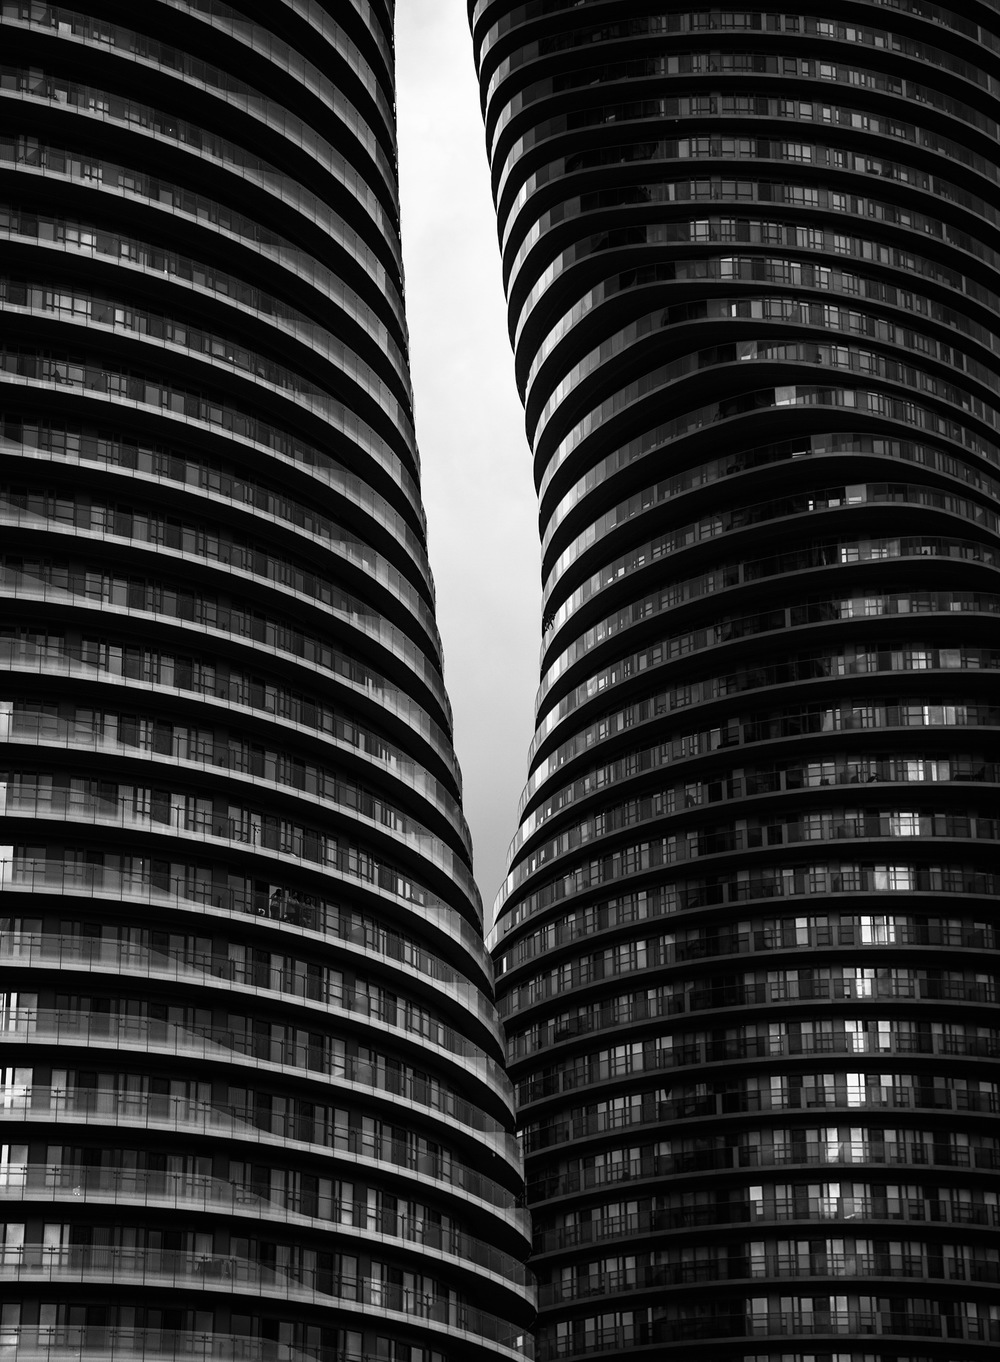 Sam-Javanrouh_monroe_absolute-world_towers_close_bw_01_resize.jpg